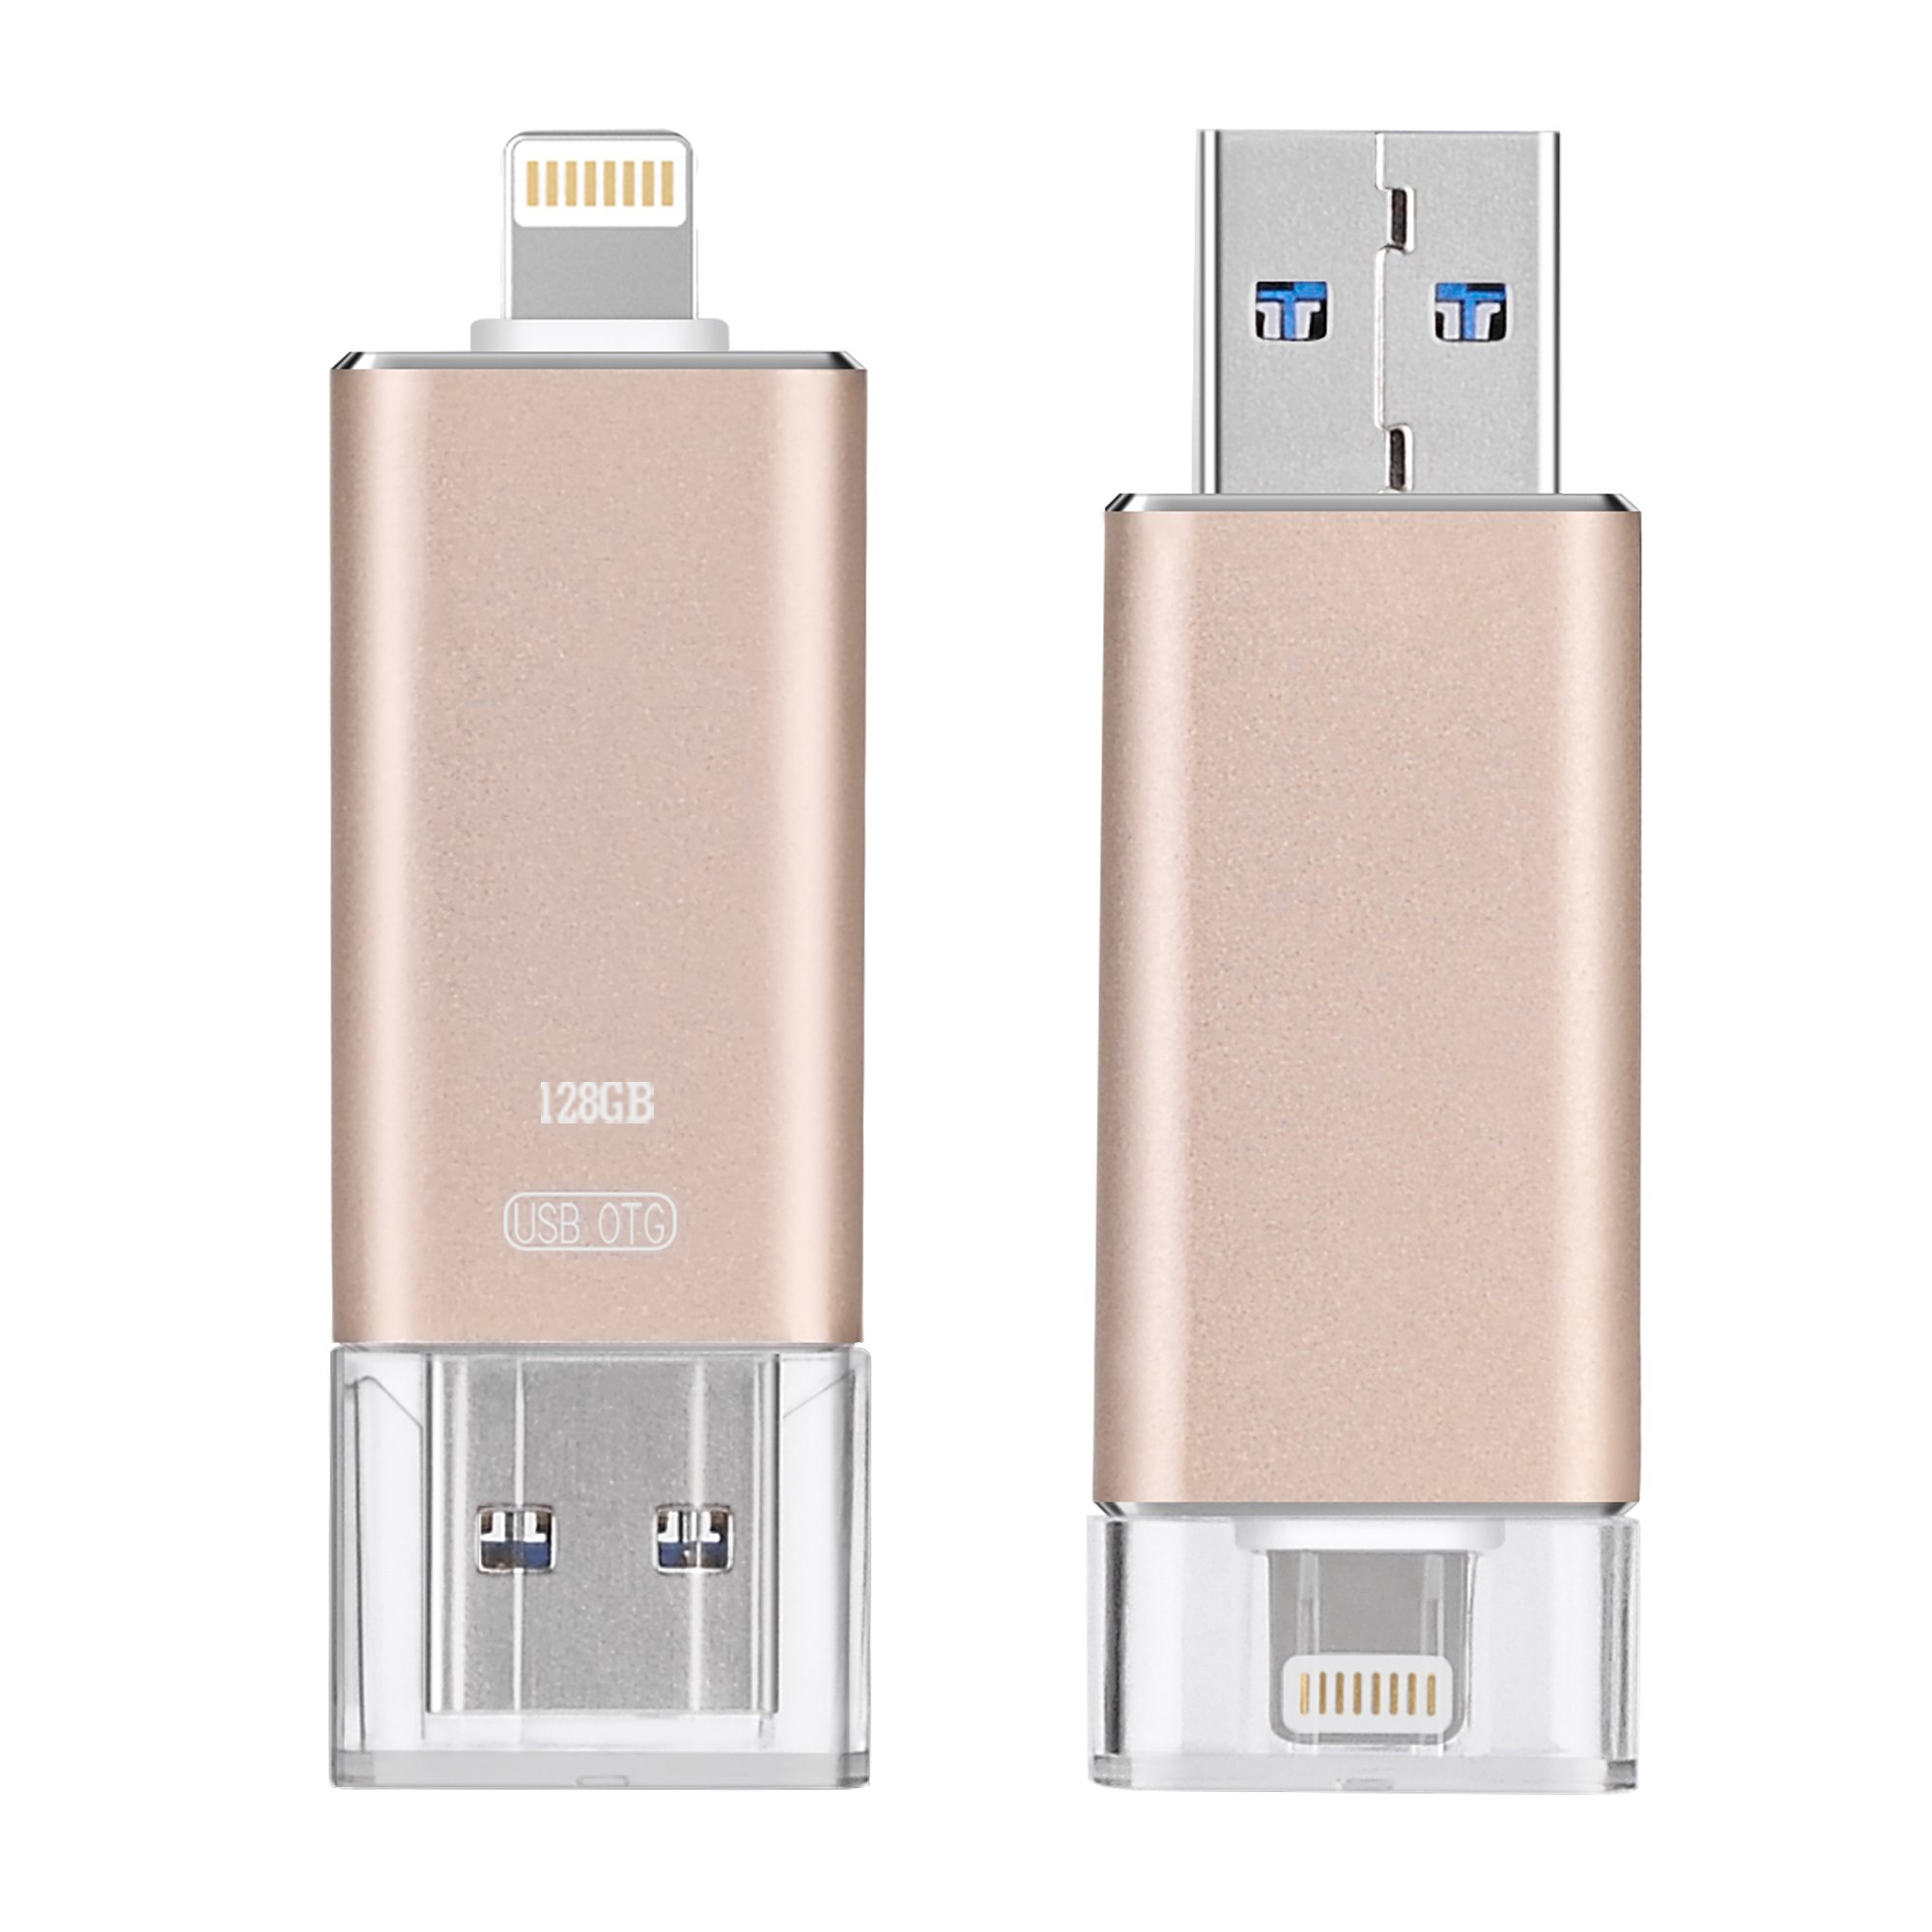 Aokay 33155 UD2 Apple USB Flash Drive Disk Memory Stick with OTG for iPhone, IPod, iPad and Computers Lightning Connector